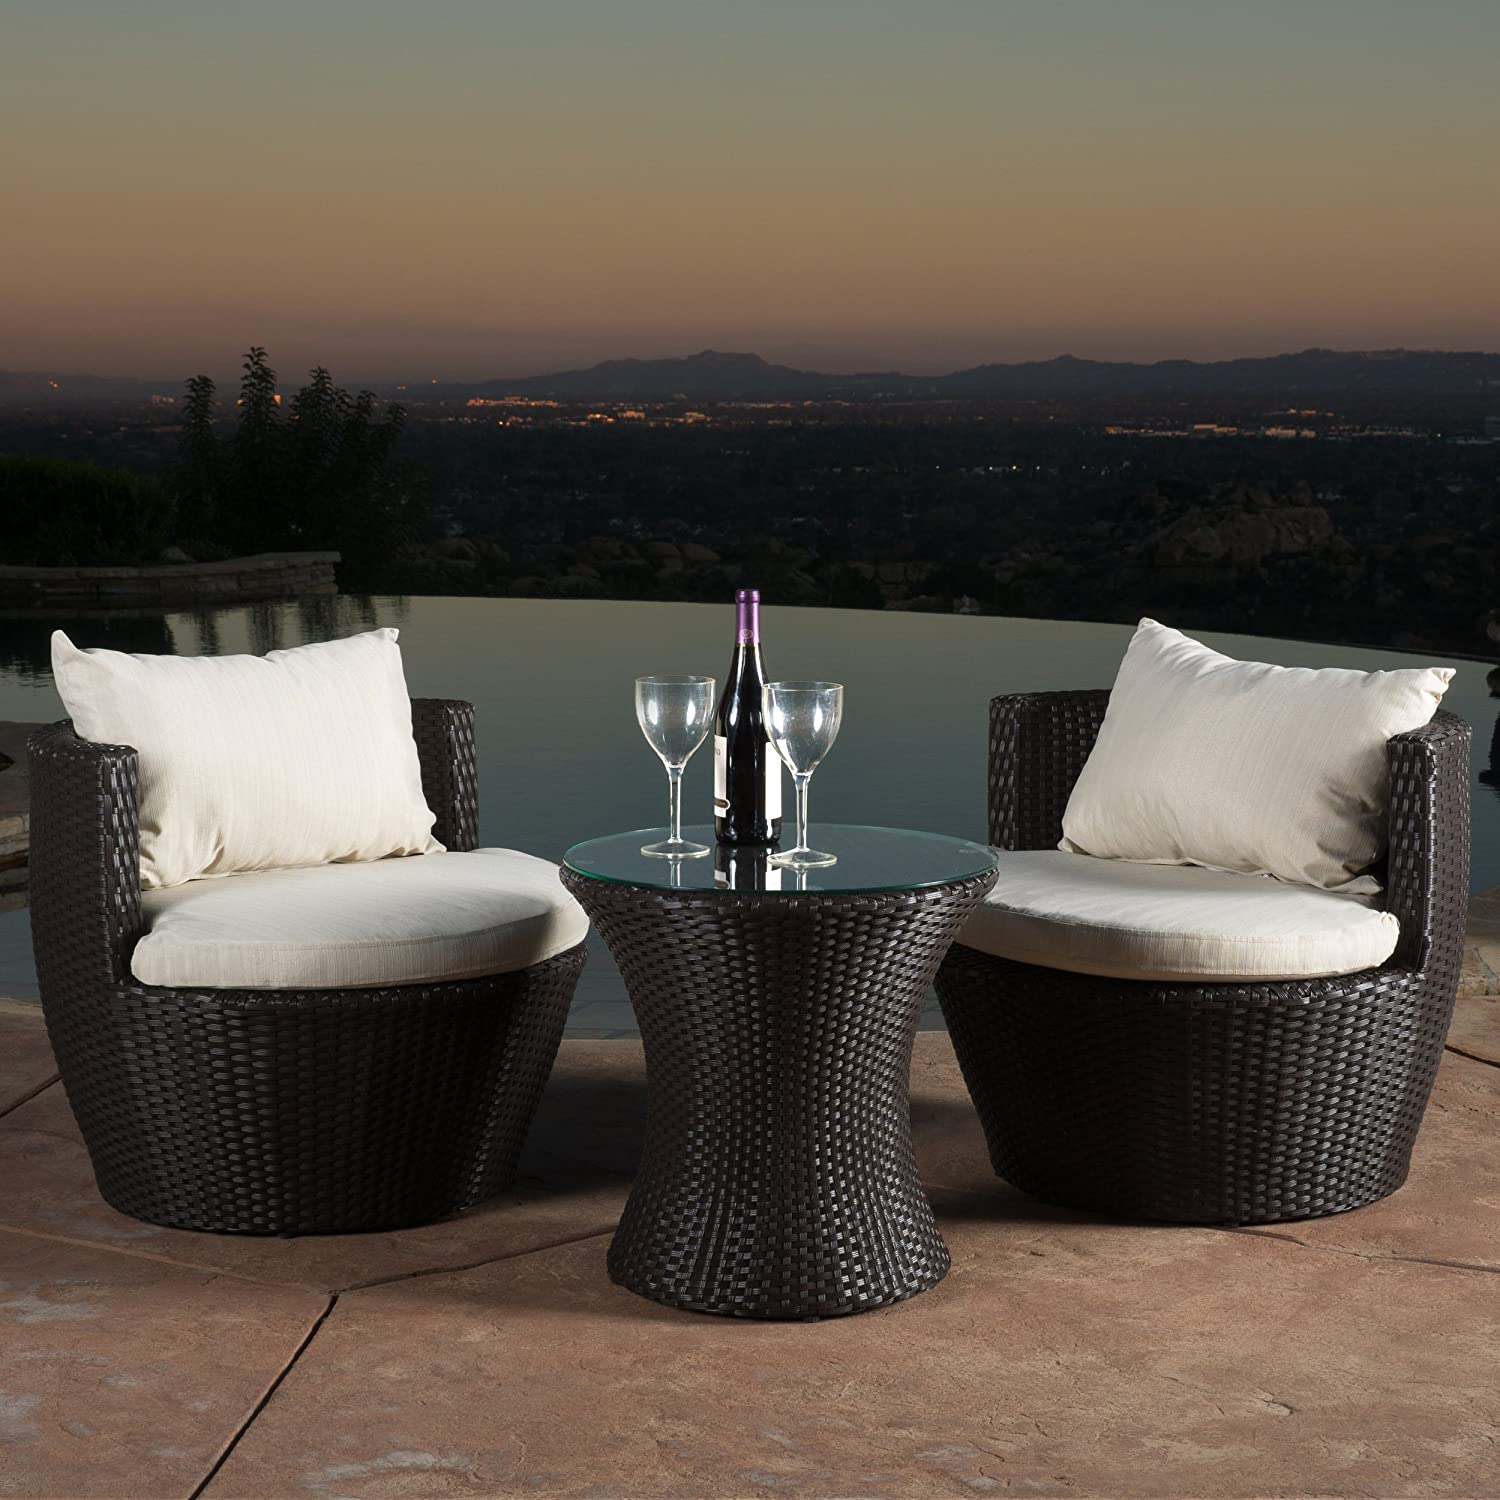 Amazon.com : Christopher Knight Home 296323 Kyoto 3 Piece Chat Set : Garden  & Outdoor - Amazon.com : Christopher Knight Home 296323 Kyoto 3 Piece Chat Set